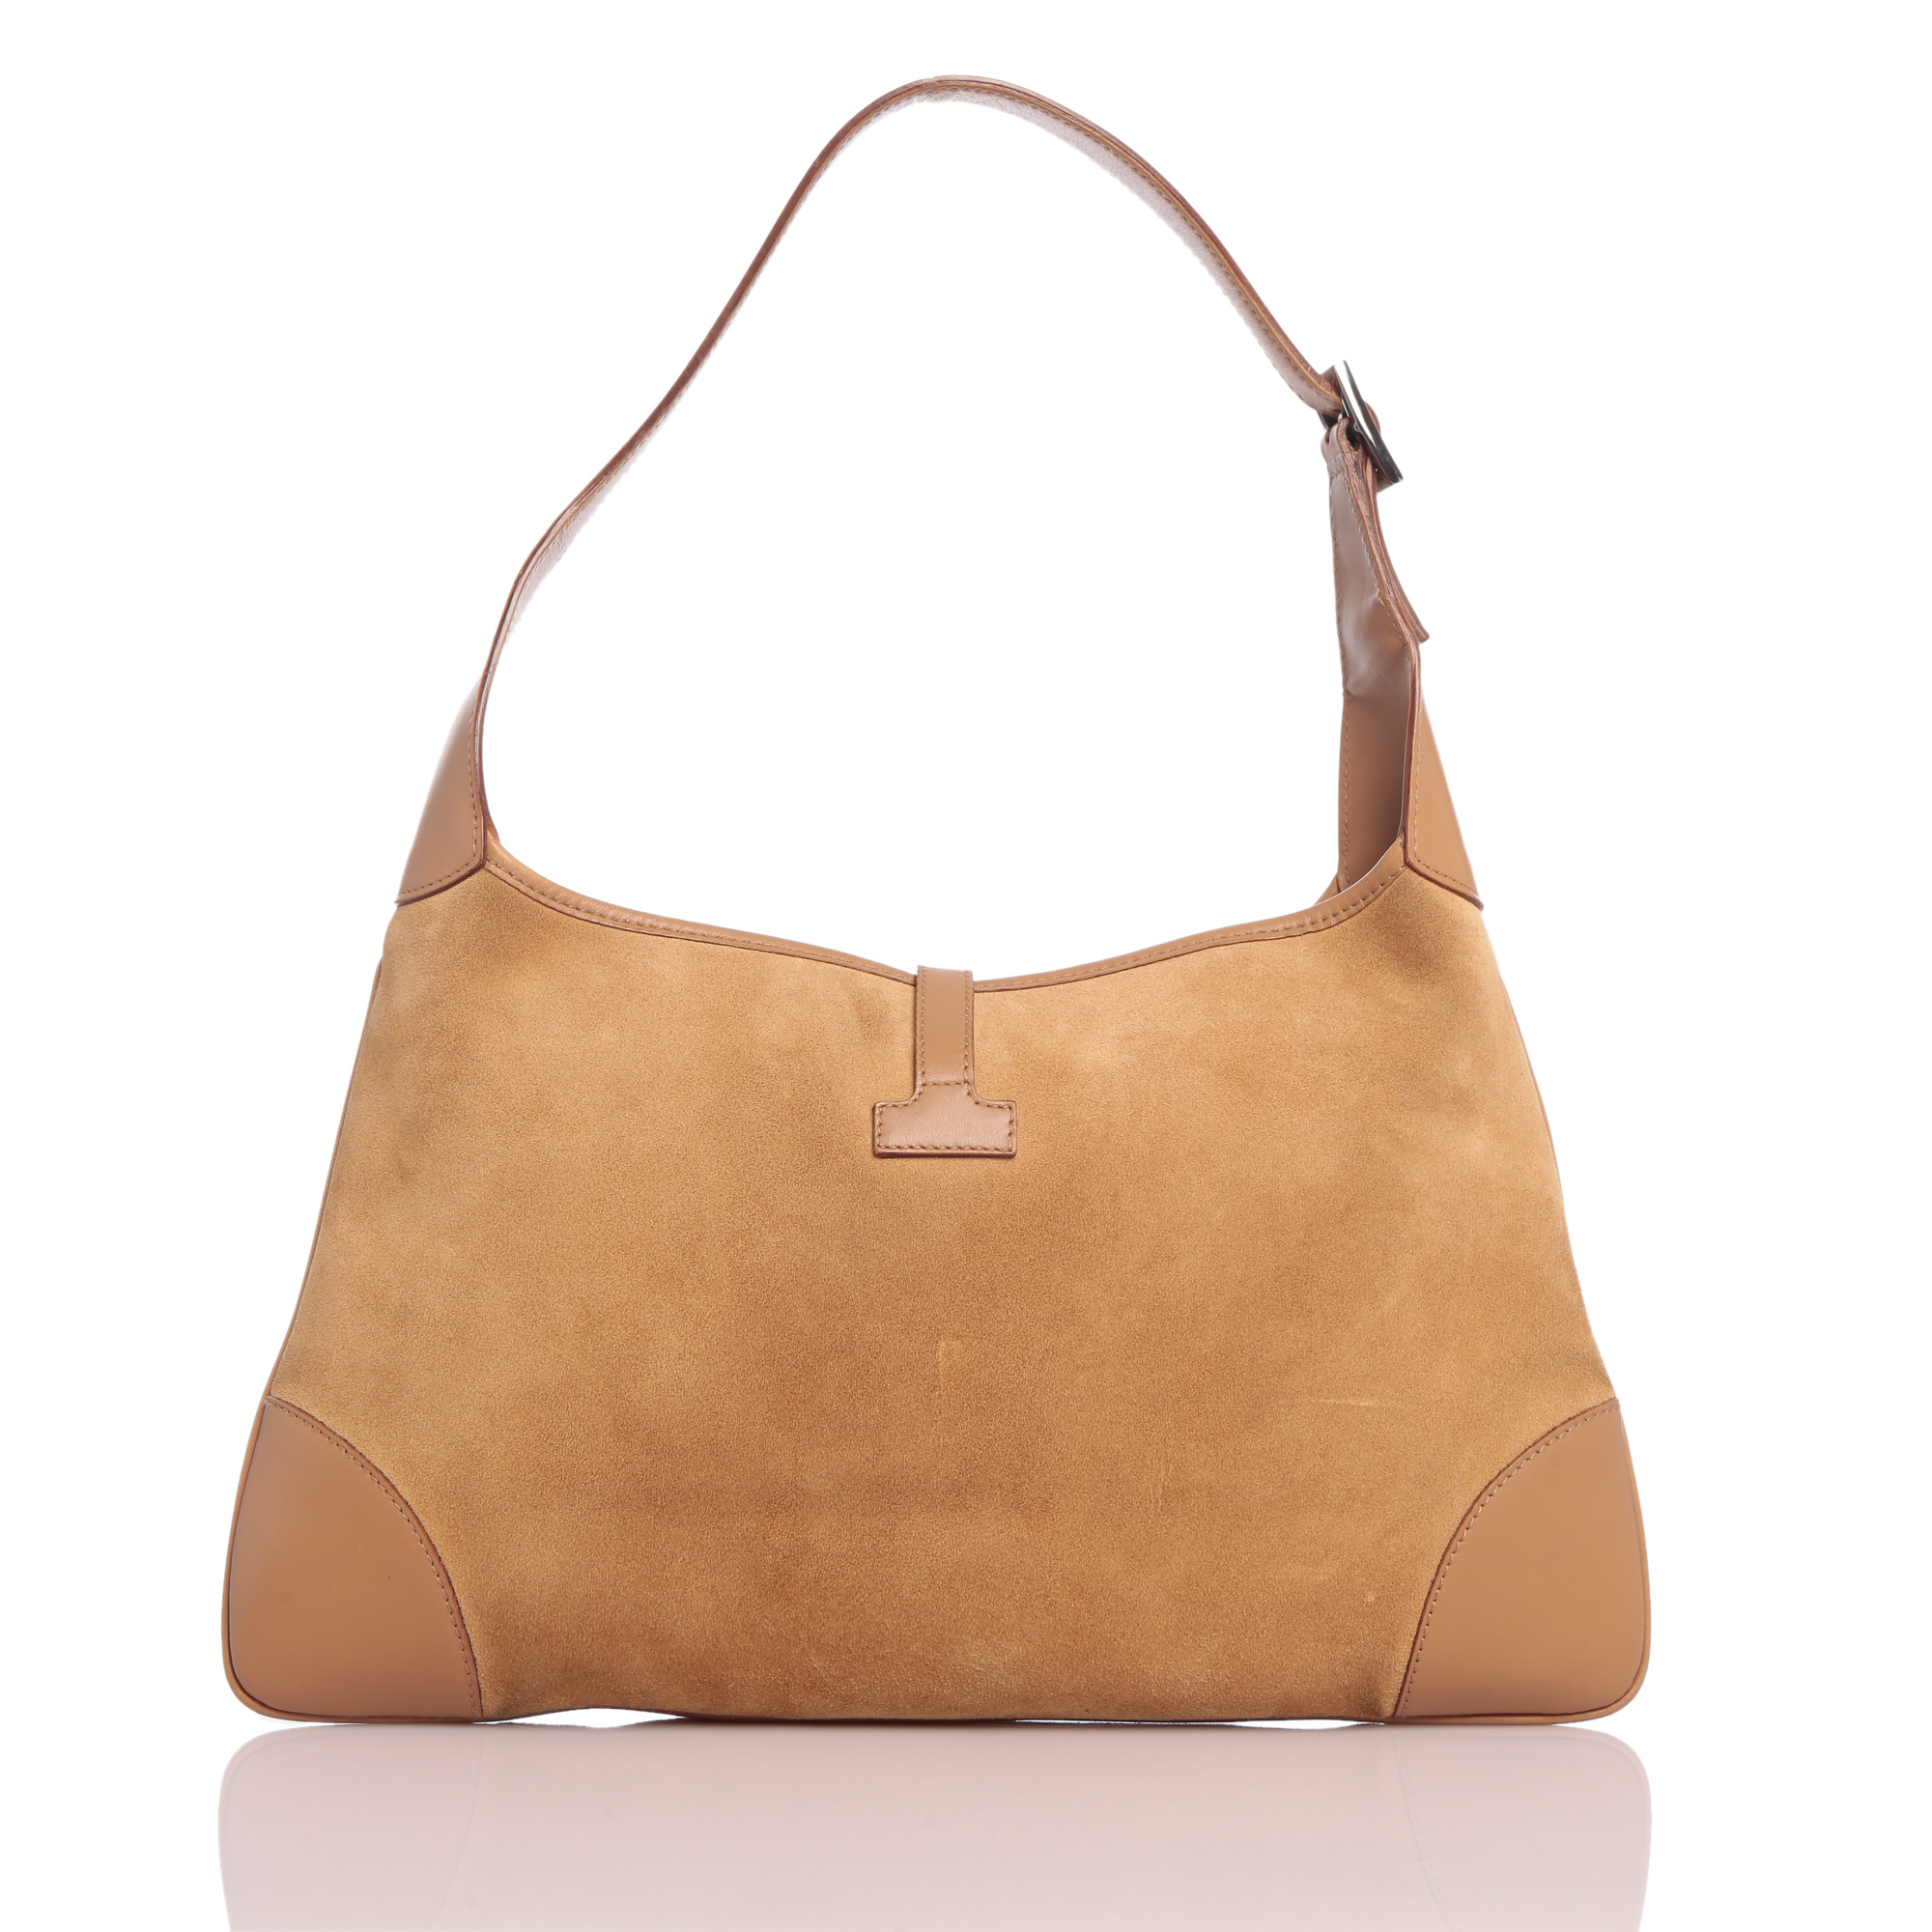 Gucci Beige Suede Large Jackie O Shoulder Bag - My Luxury Bargain